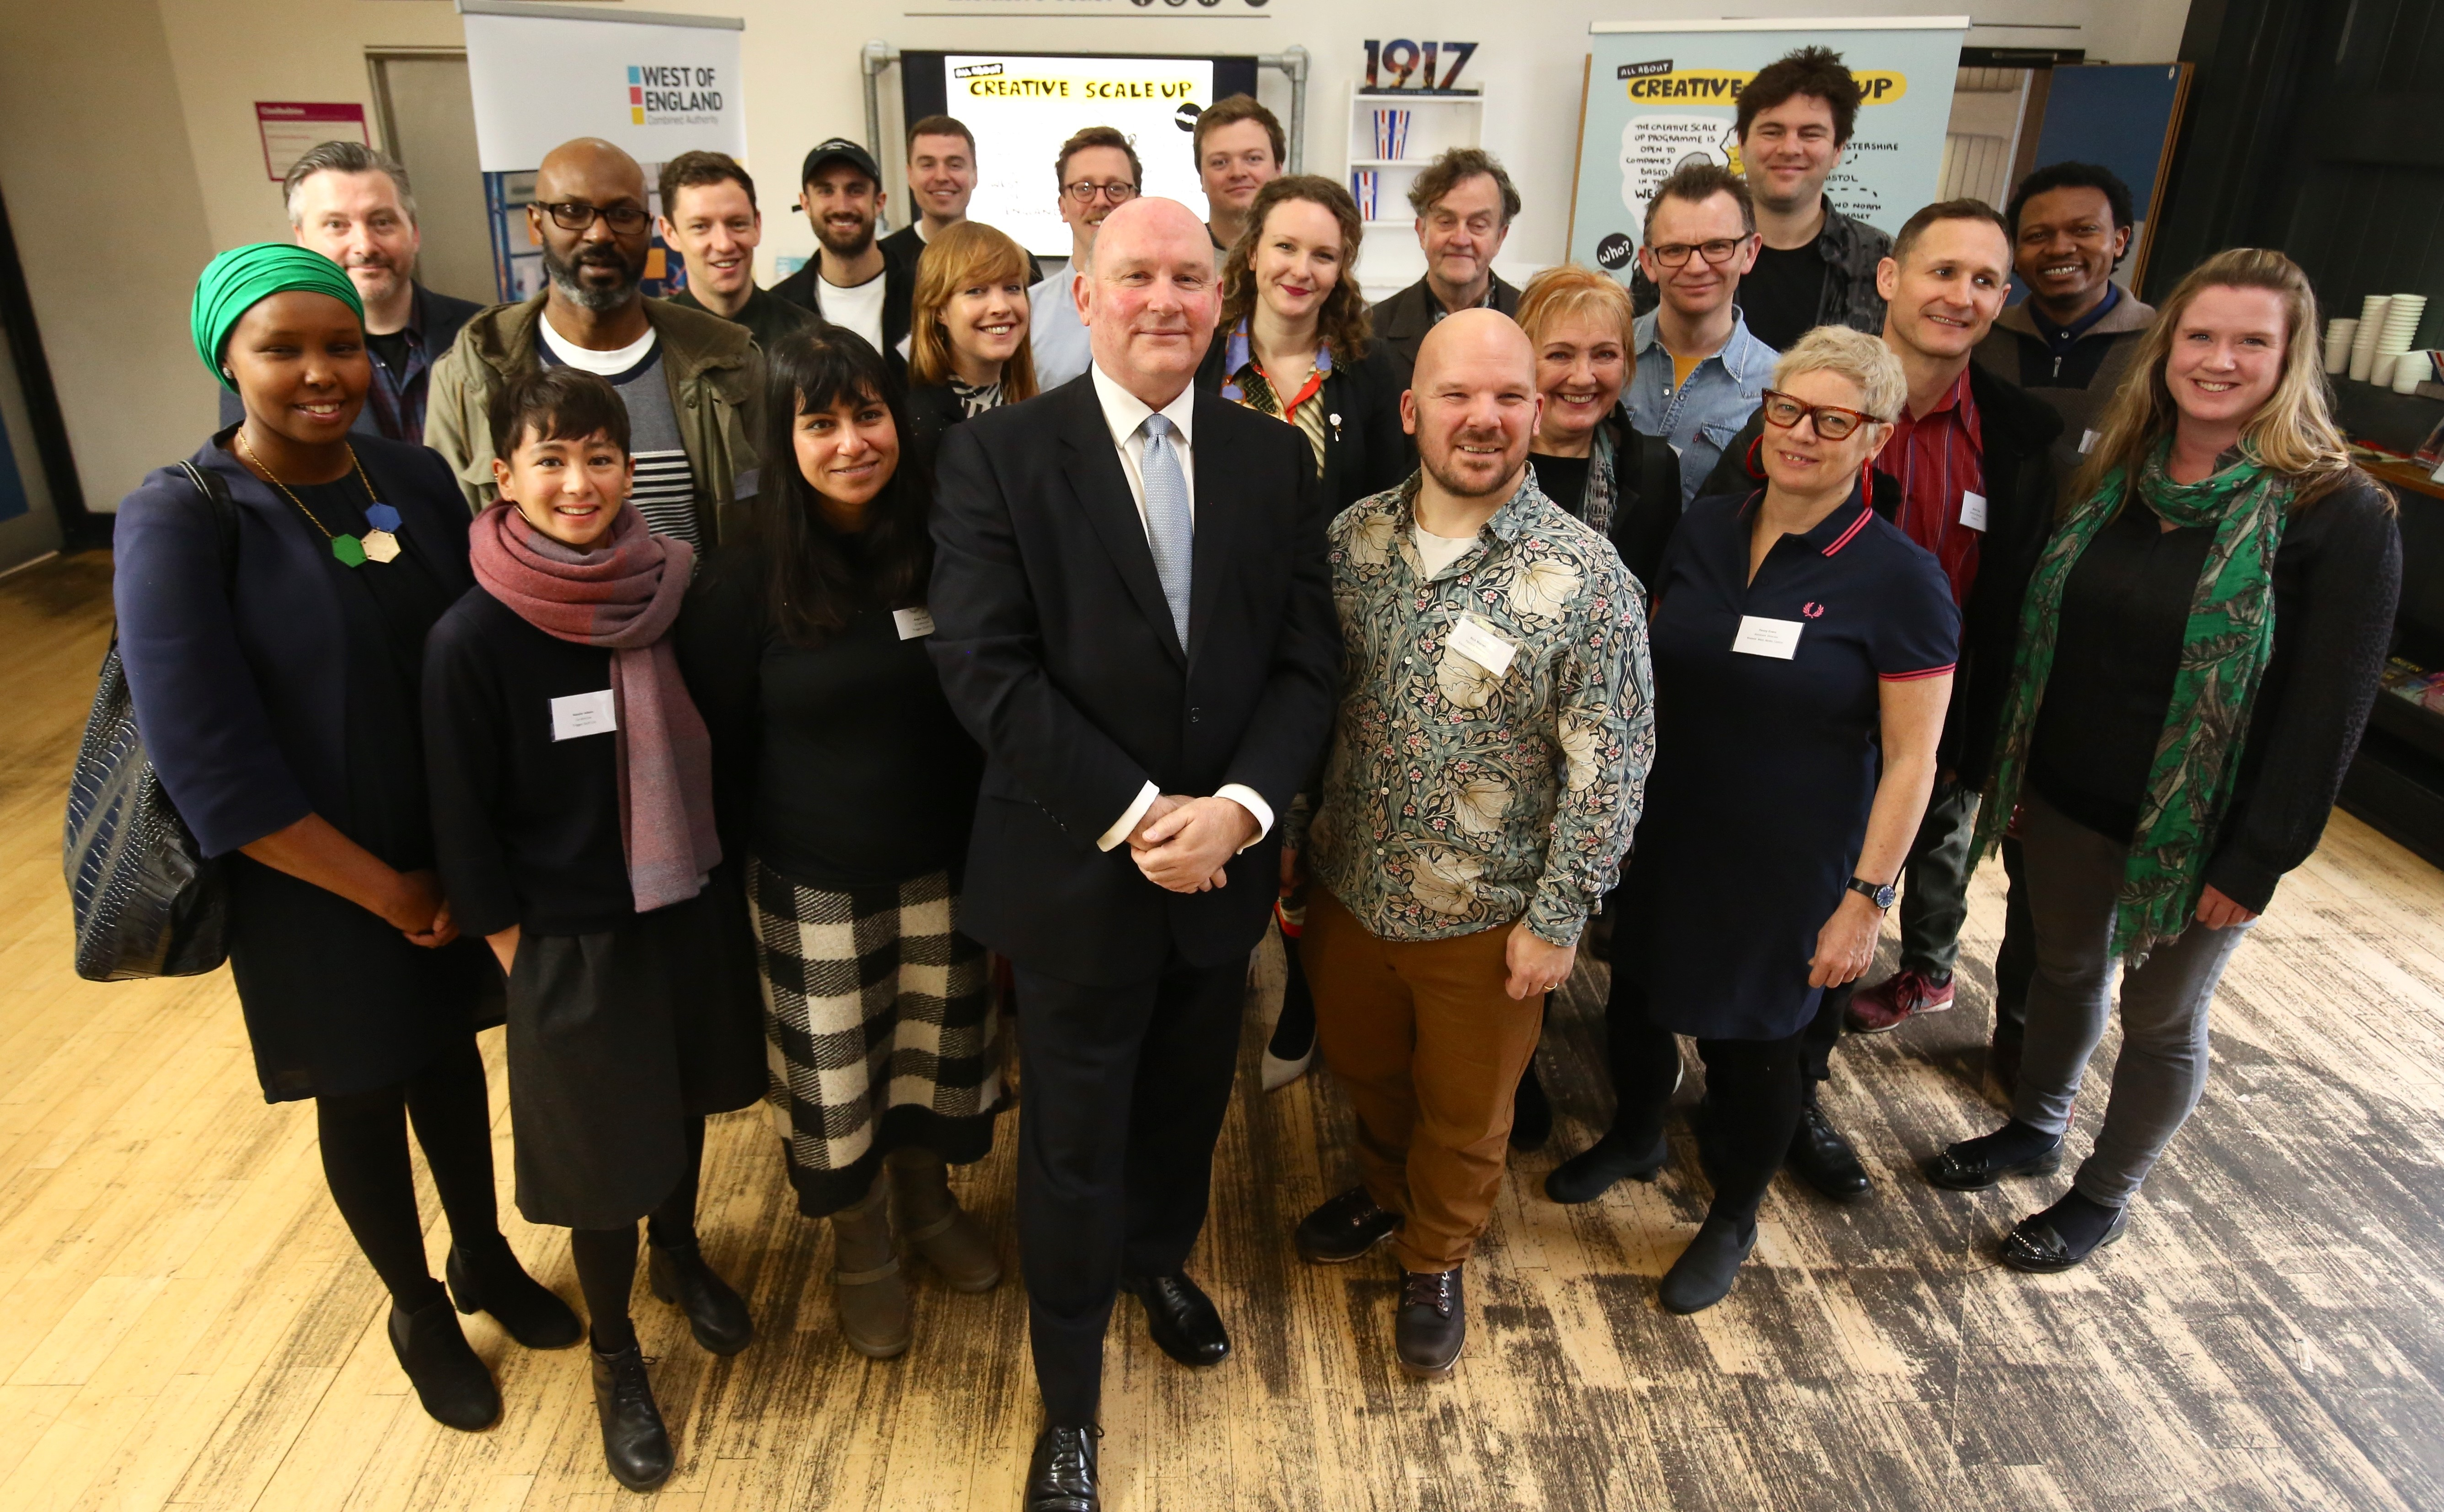 Image: Mayor Tim Bowles with the first creative scale up cohort